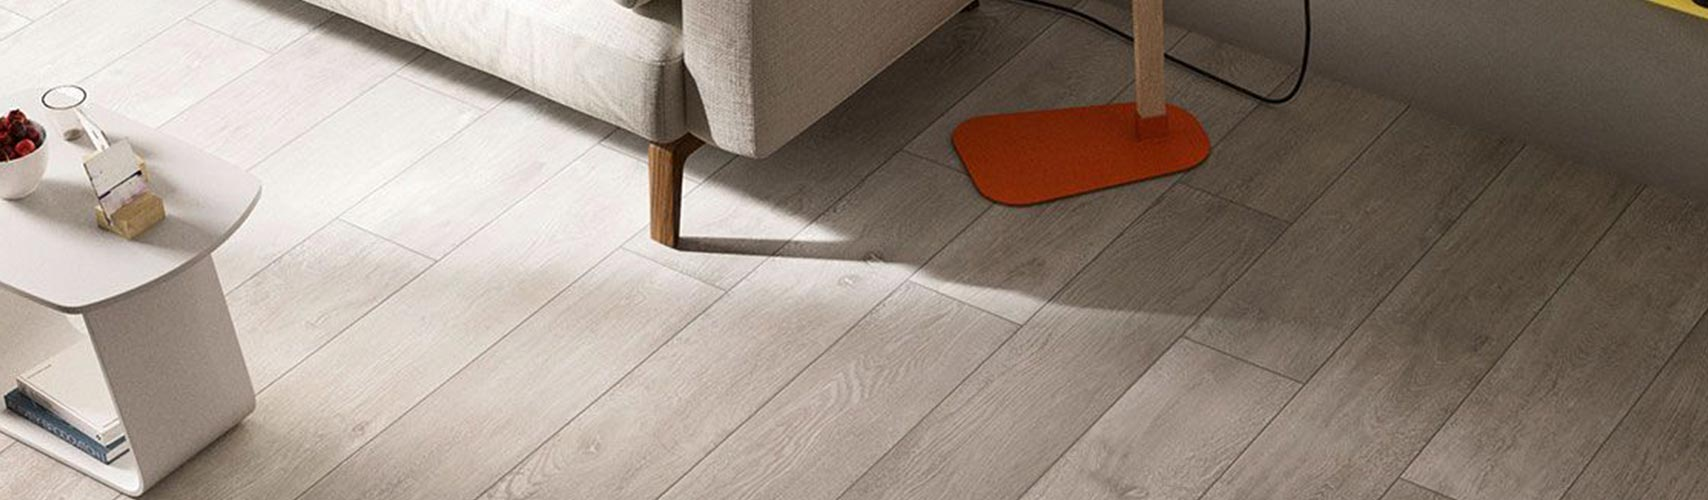 5 Reasons to choose Wooden Floor Tiles for your Home!